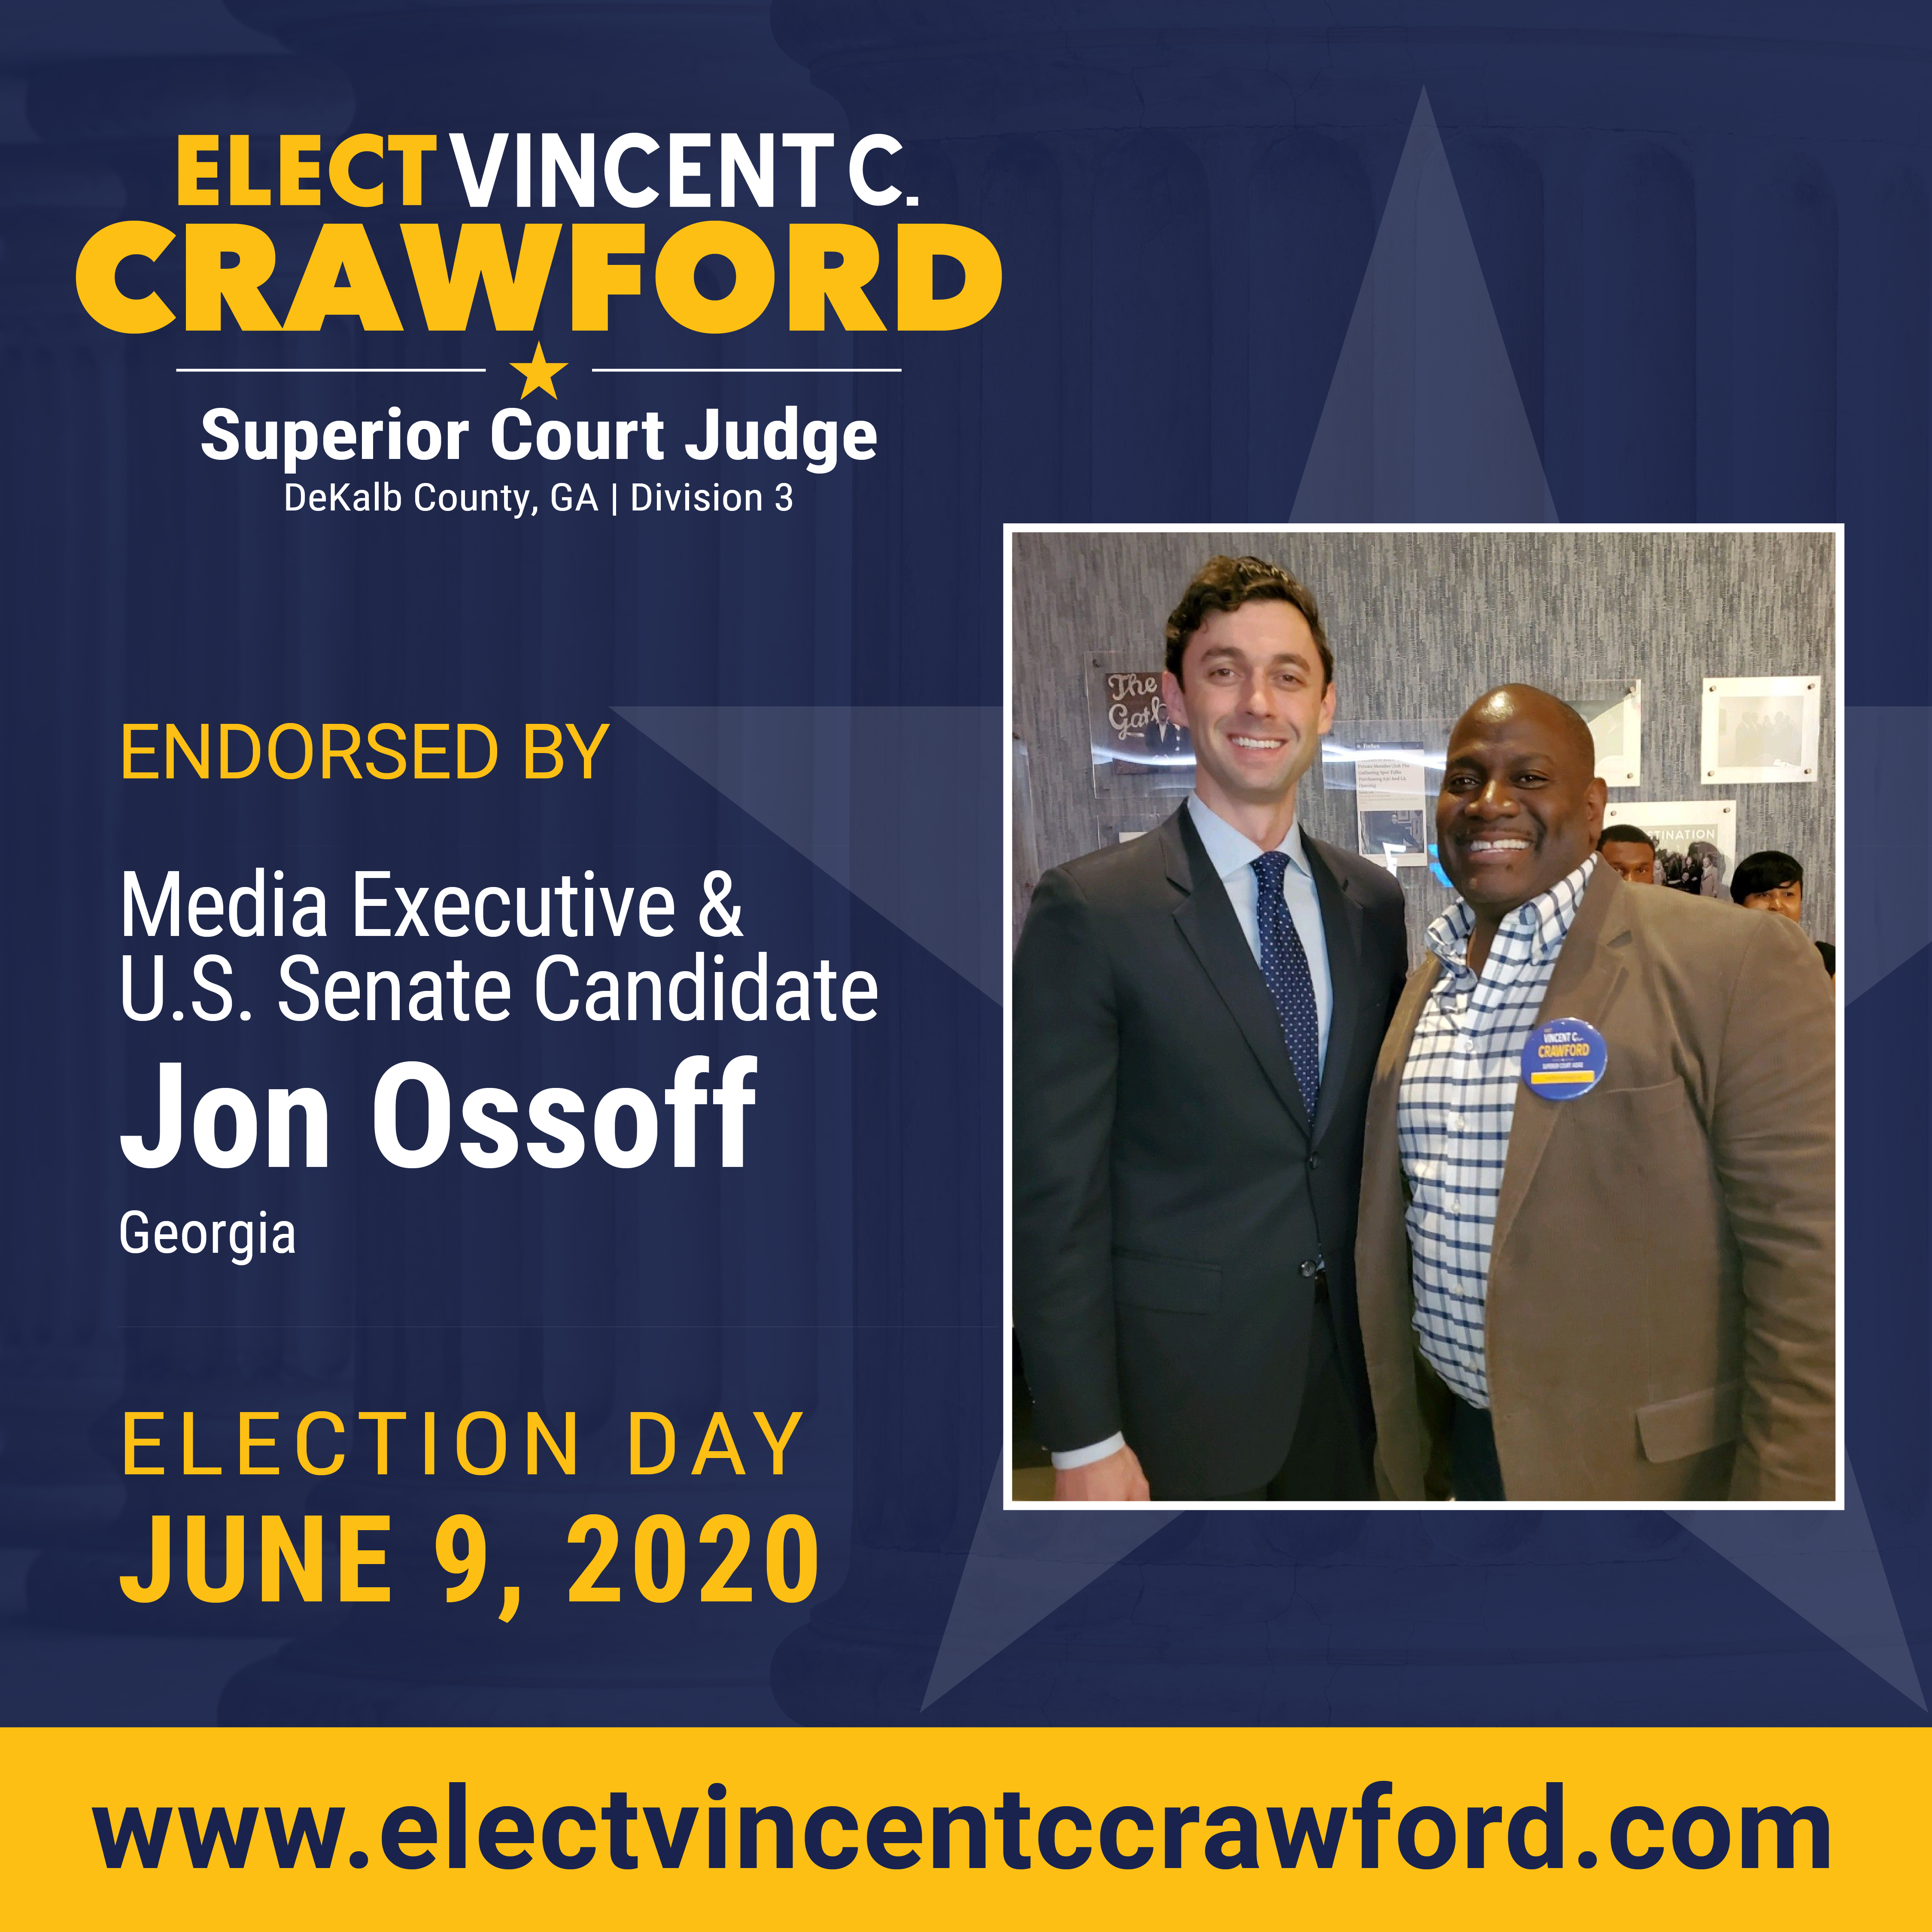 Judge Crawford receives endorsement from U.S. Senate candidate Jon Ossoff